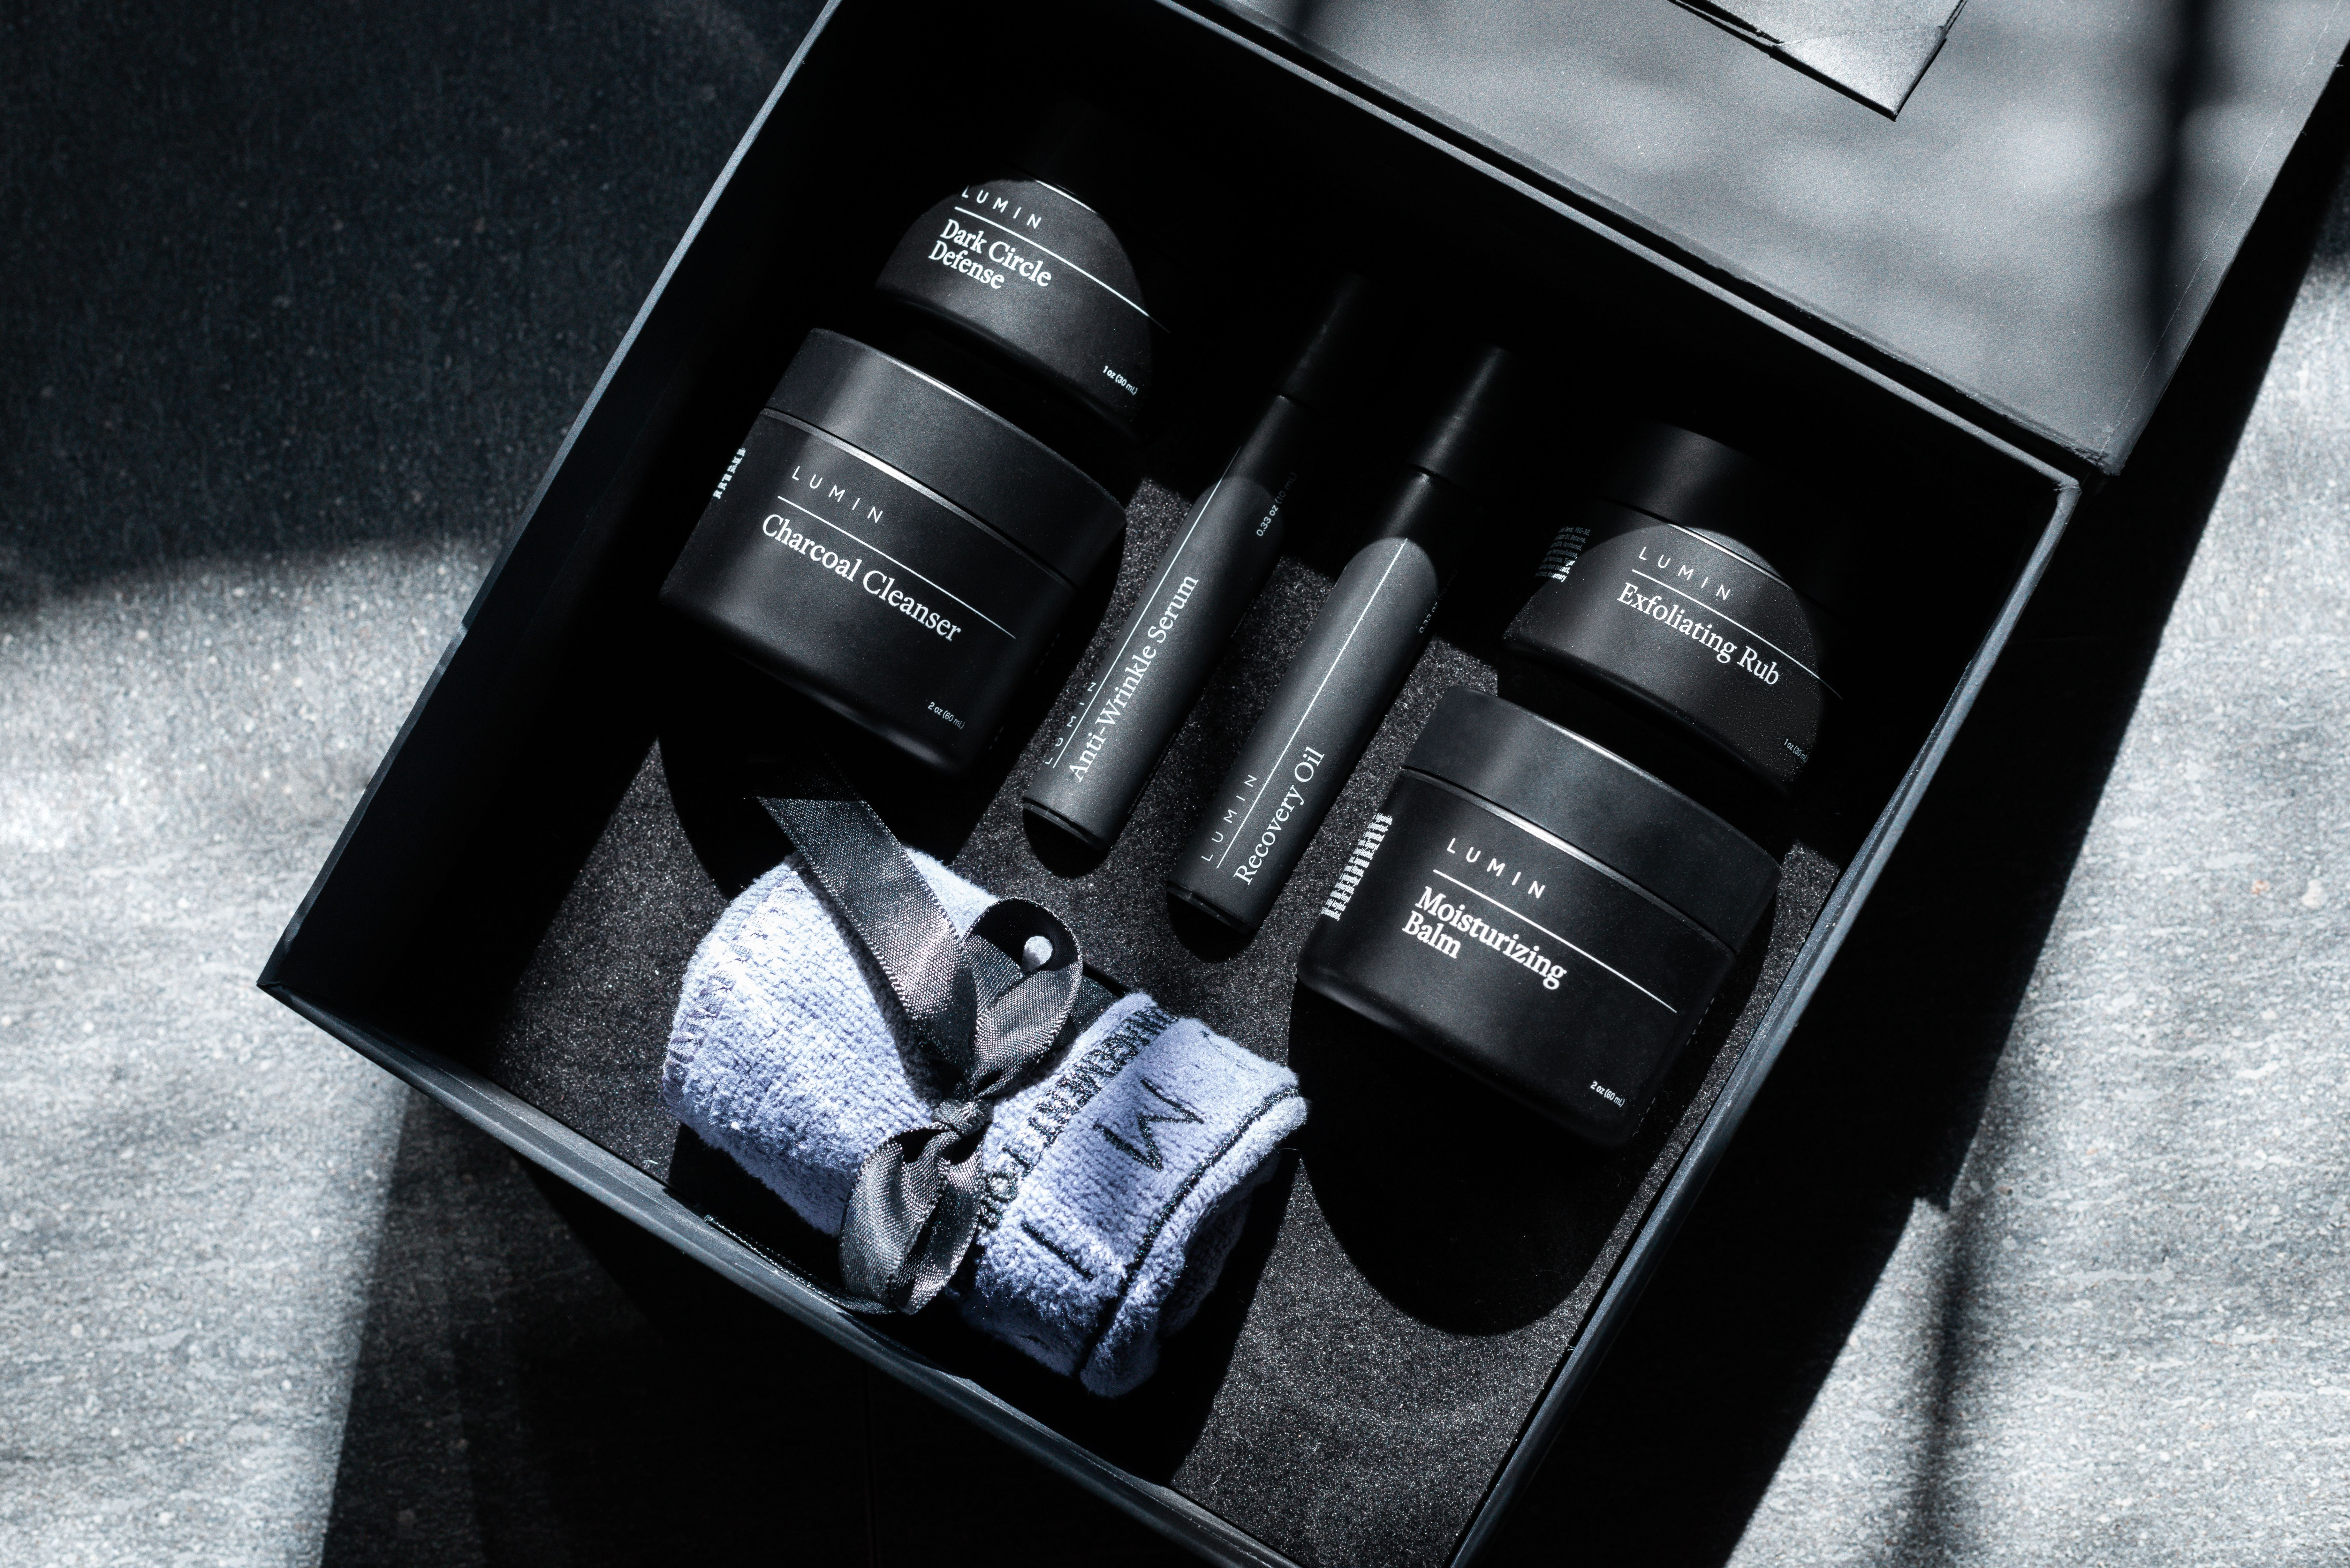 Lumin Skincare For Men Has A Brand New Look We Ve Updated Our Packaging To Have A Sleek Premi Mens Skin Care Packaging Mens Skincare Packaging Mens Skin Care